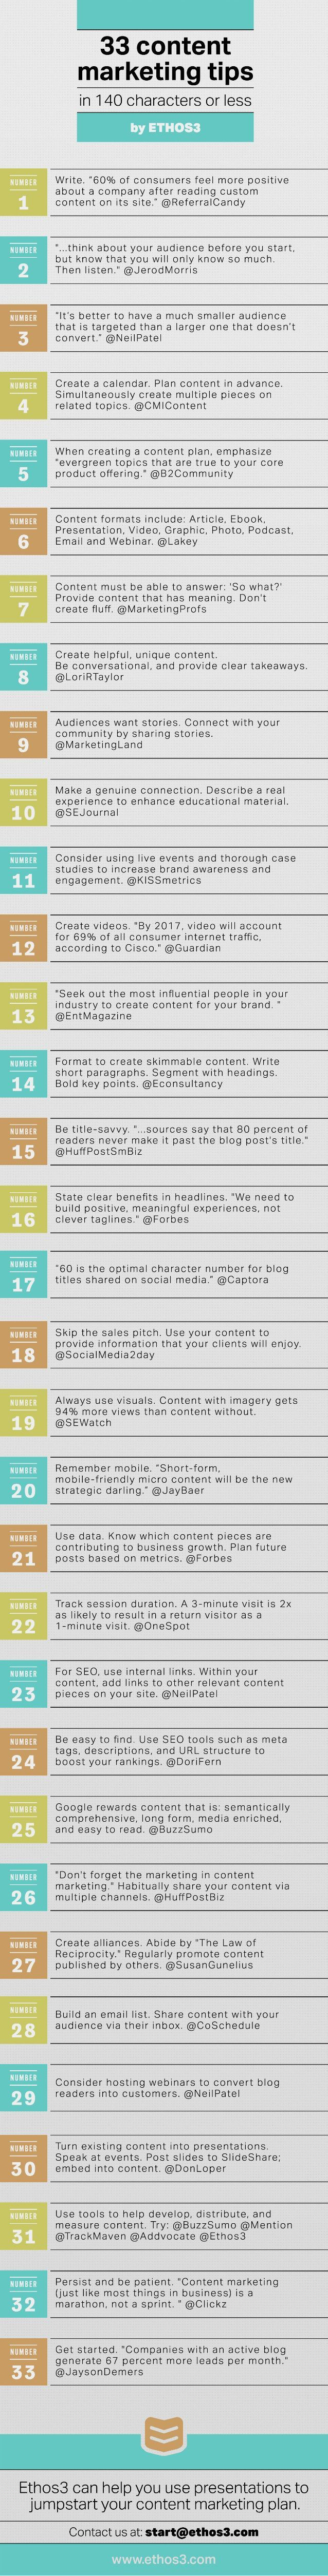 33 Content Marketing Tips.